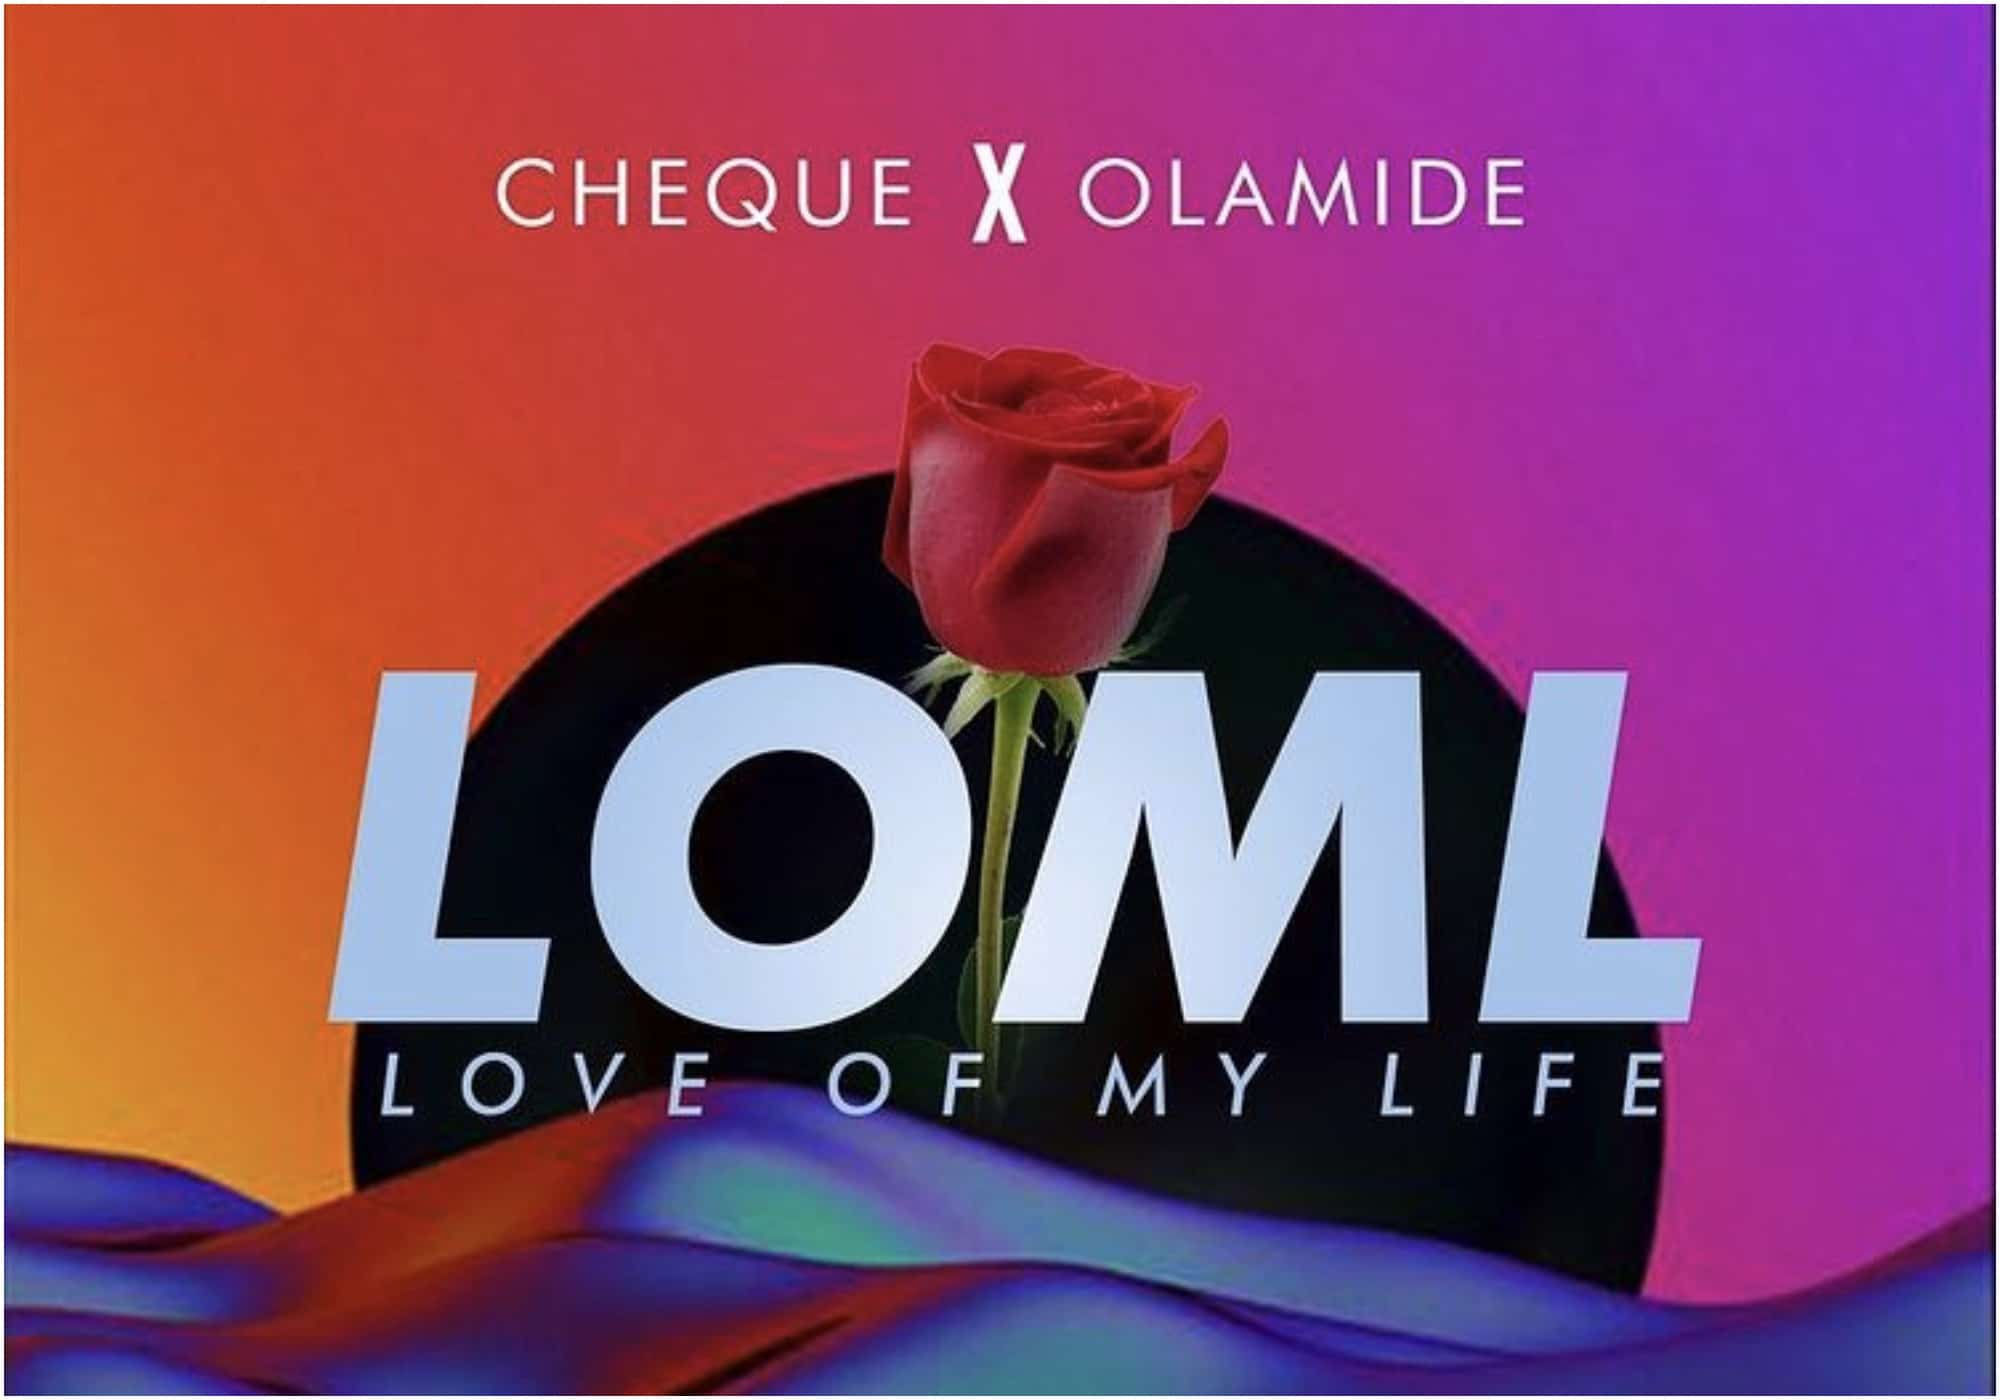 Cheque feat. Olamide – LOML